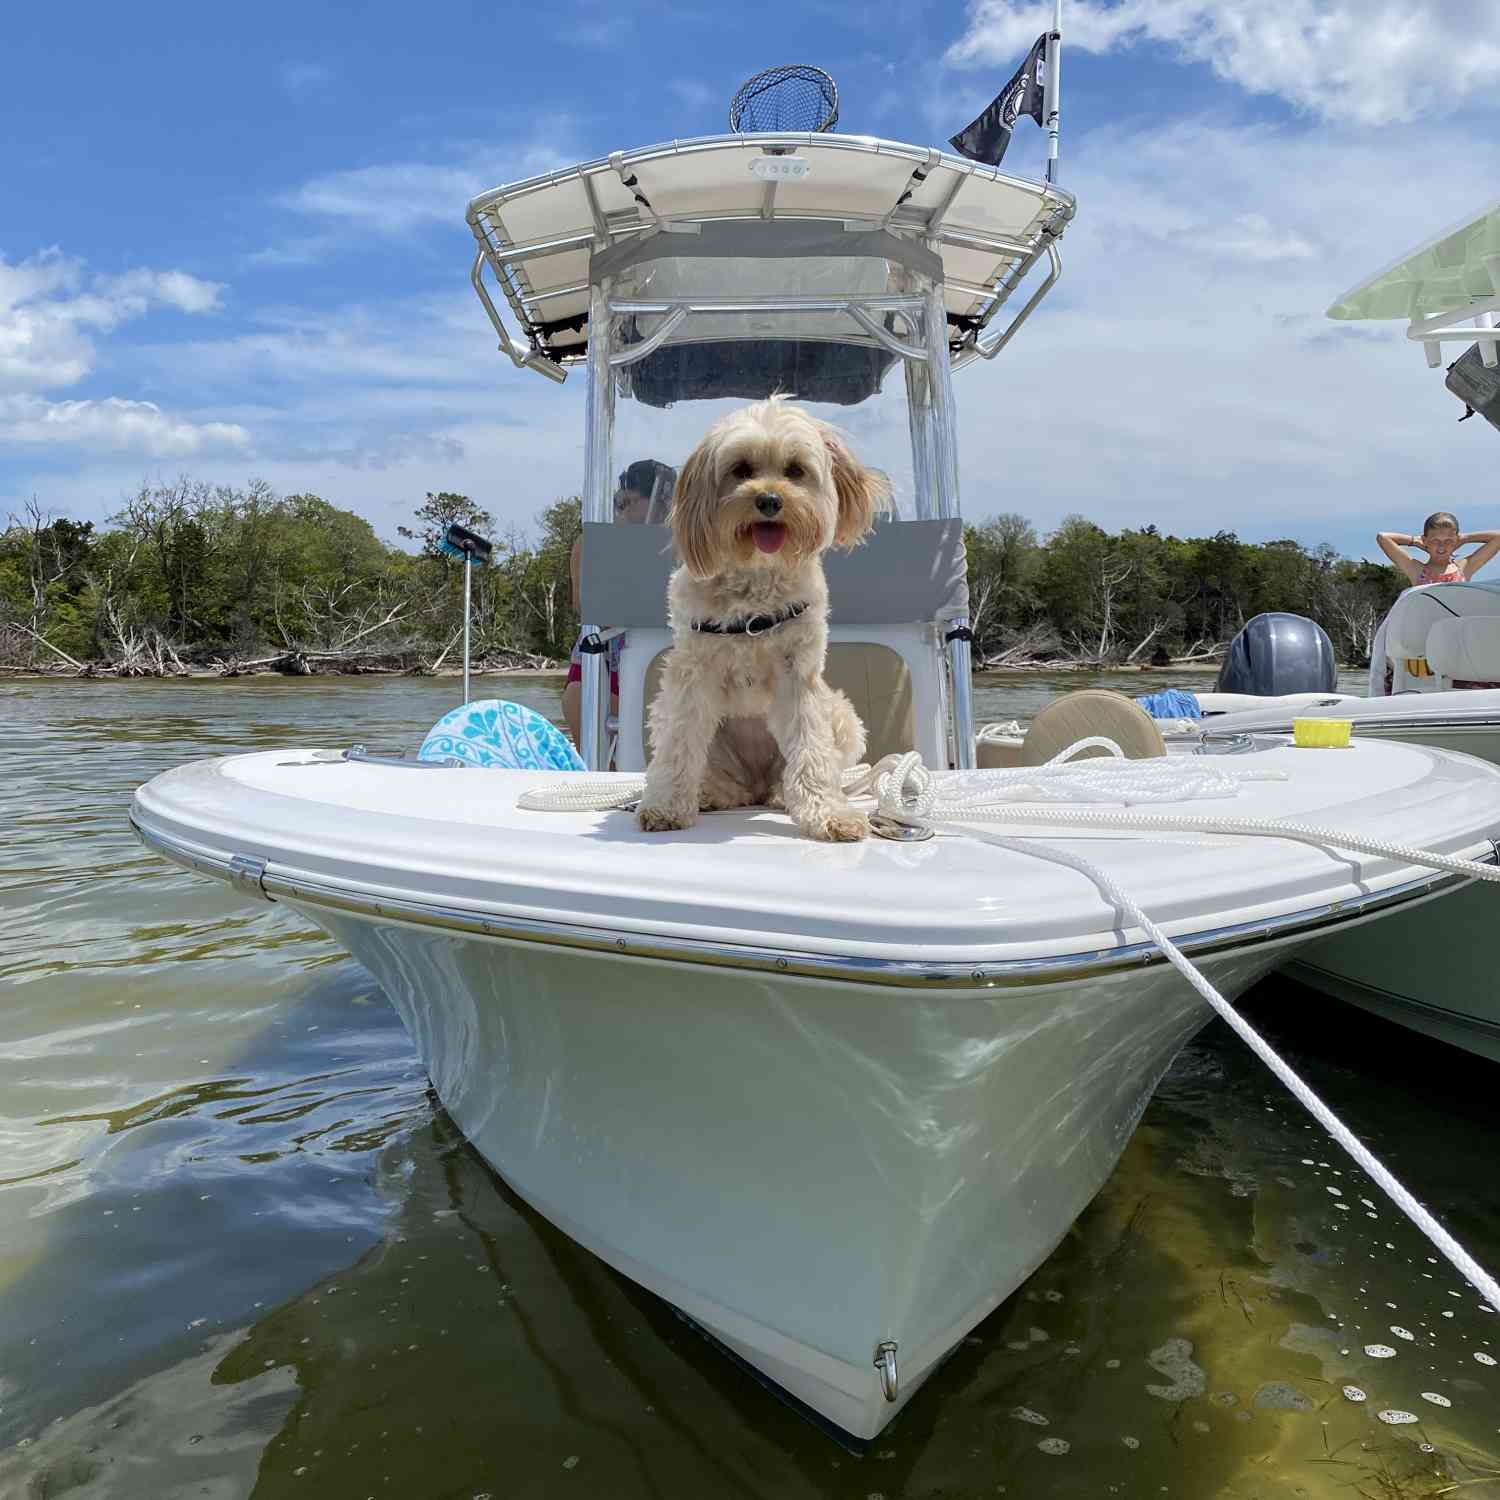 Title: Dog day's - On board their Sportsman Open 212 Center Console - Location: Barnegat bay NJ. Participating in the Photo Contest #SportsmanJune2020